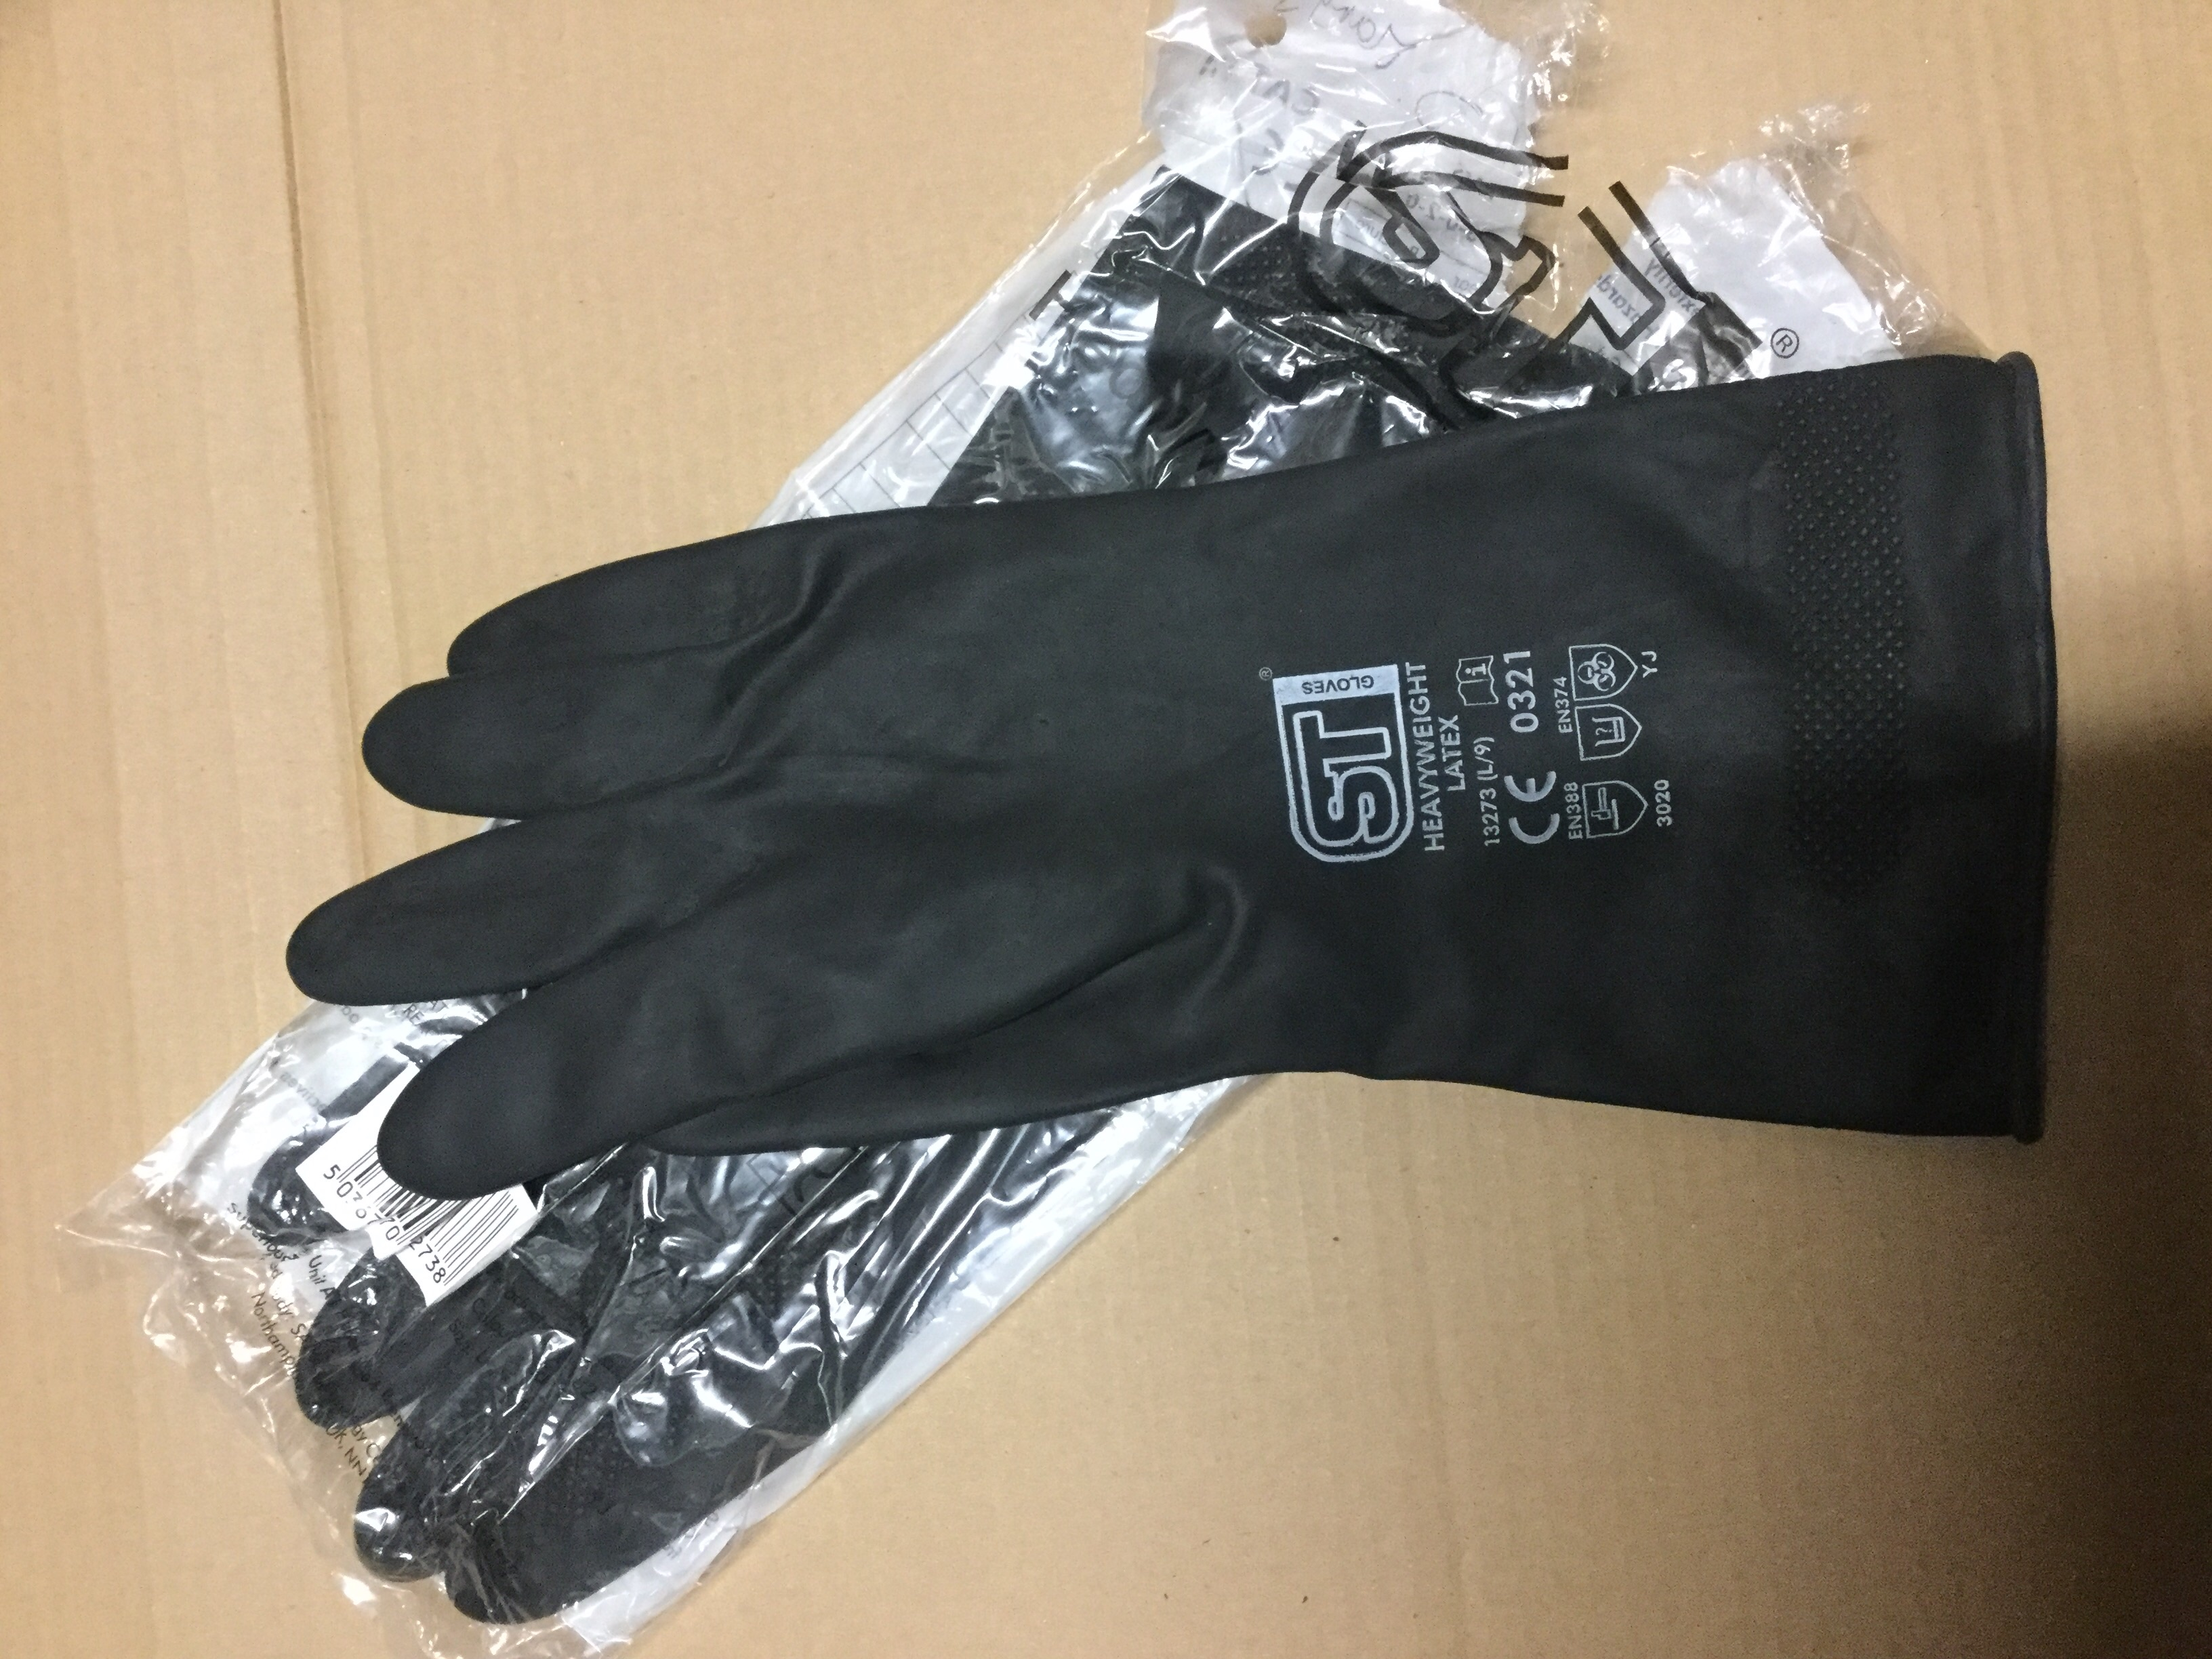 Heavy duty household rubber gloves